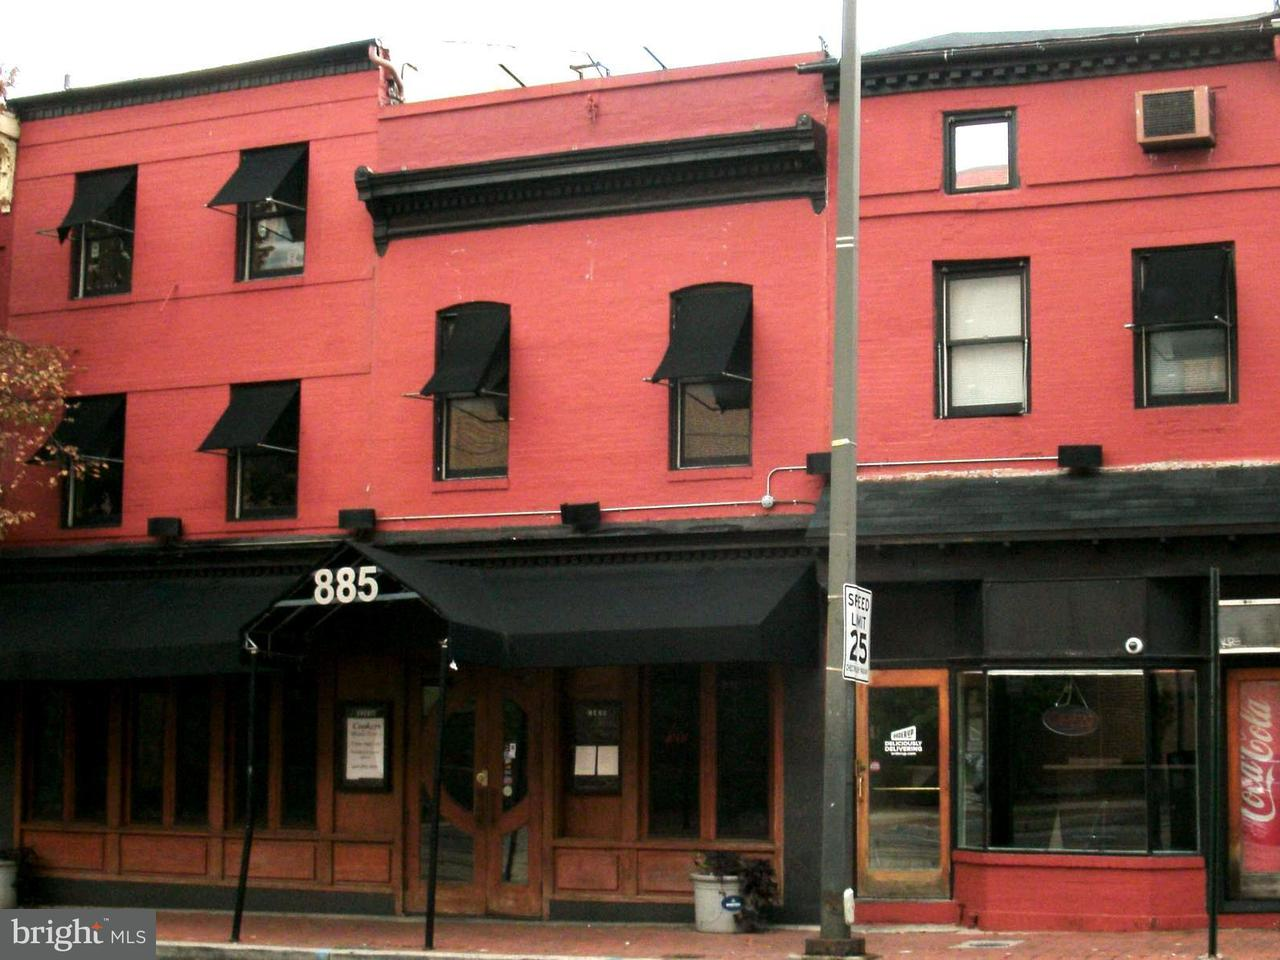 Commercial for Sale at 885 Howard St Baltimore, Maryland 21201 United States